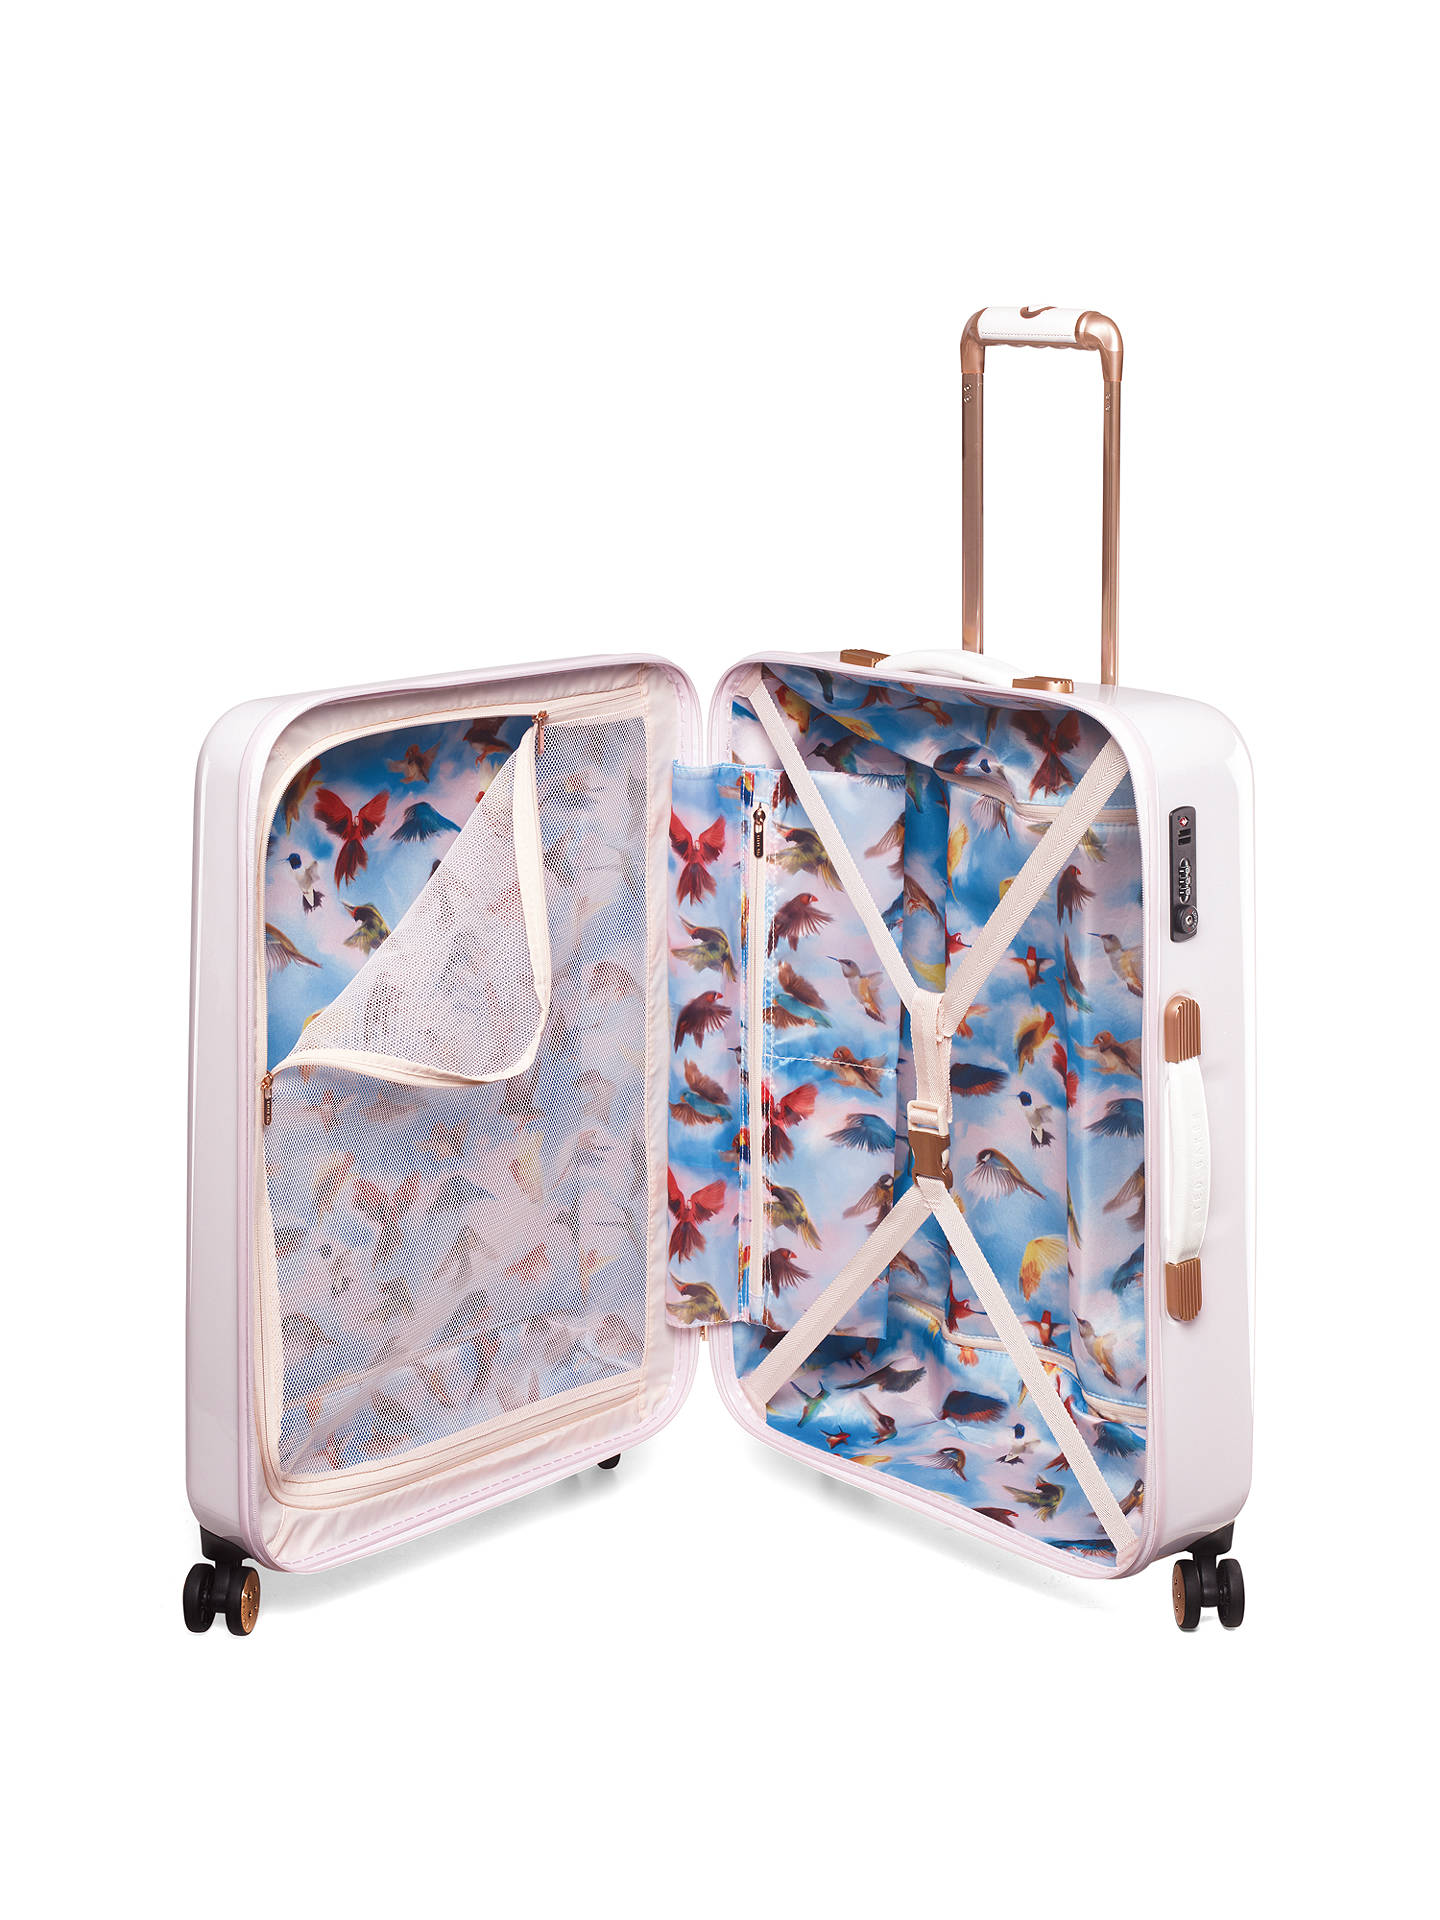 0c59b2618aed9 ... Buy Ted Baker Alanie Hanging Gardens 4-Wheel 69.5cm Suitcase